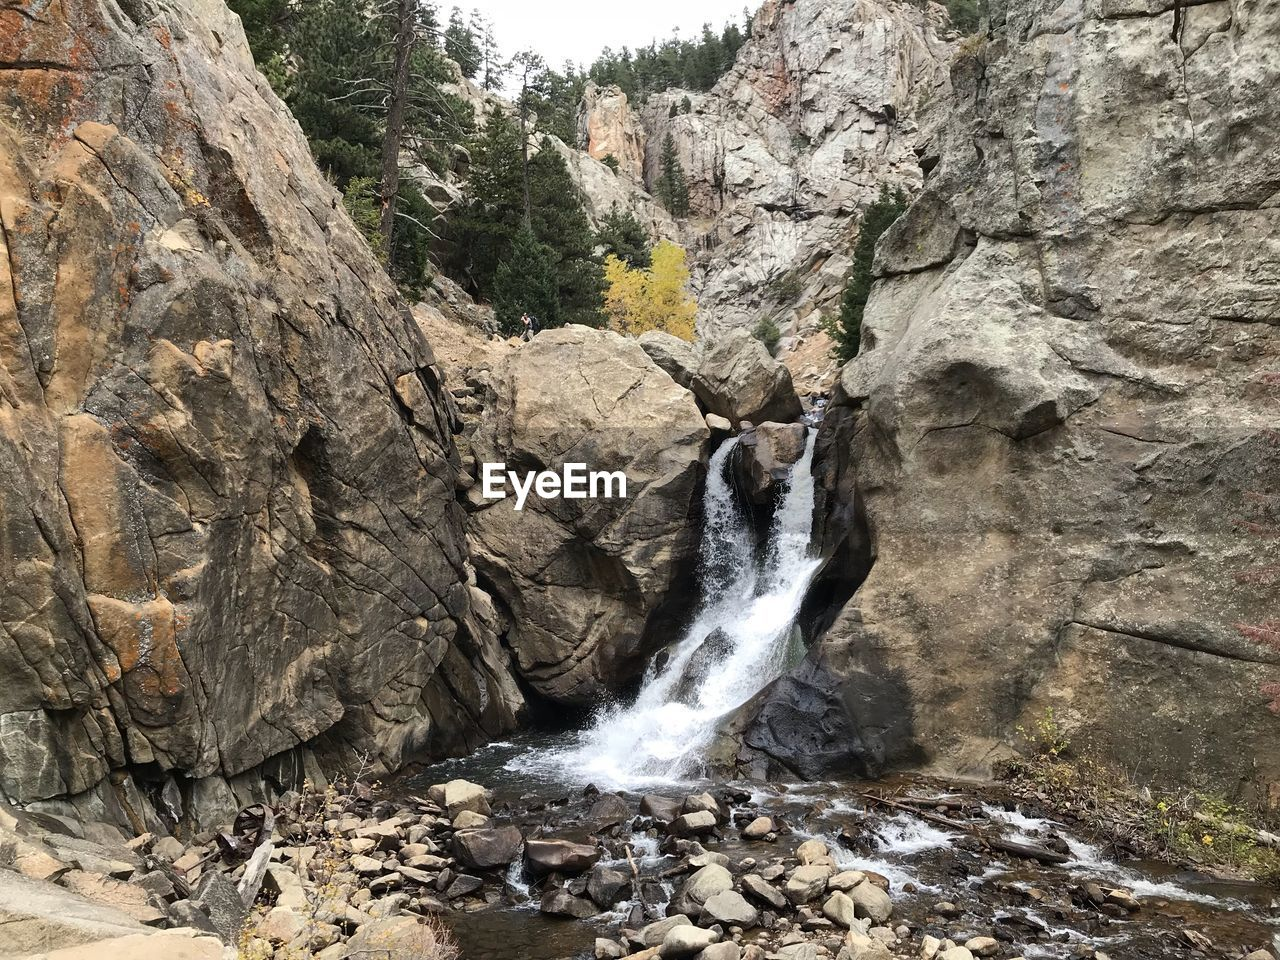 rock, rock - object, solid, waterfall, motion, water, nature, long exposure, beauty in nature, mountain, no people, scenics - nature, land, environment, rock formation, tree, blurred motion, flowing water, outdoors, formation, flowing, power in nature